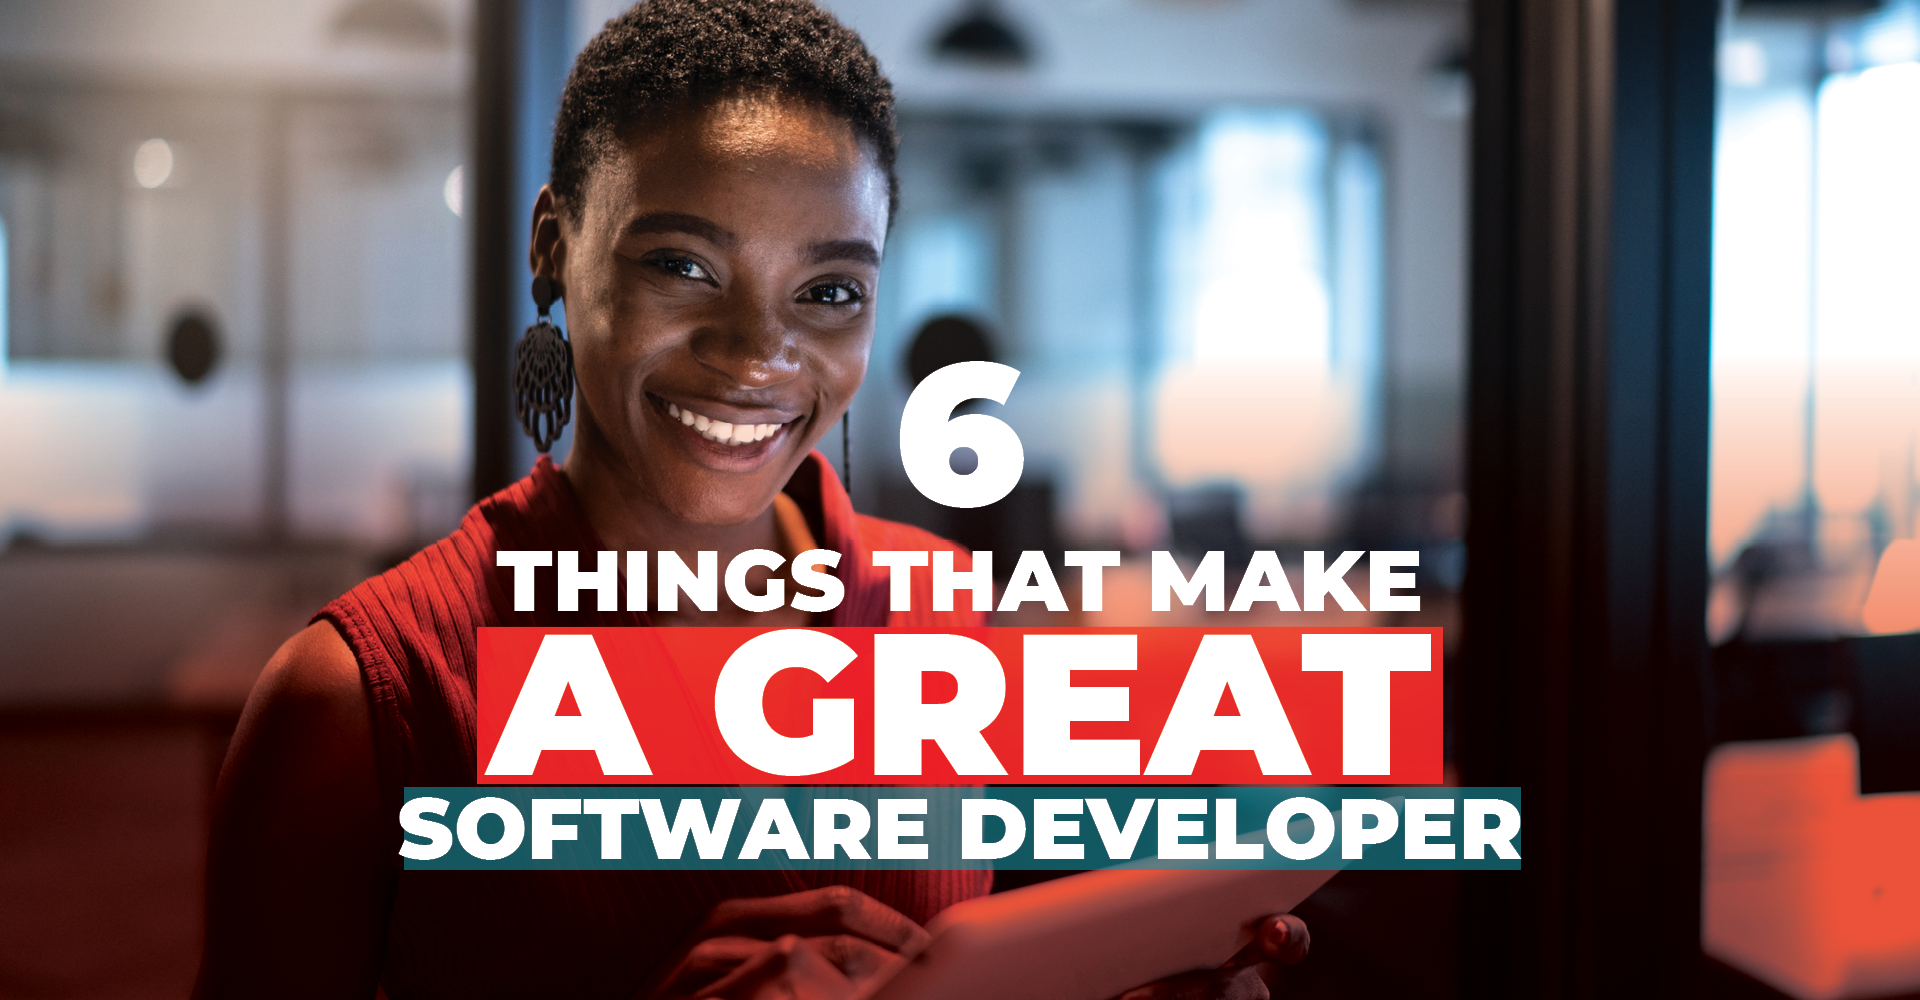 6 Things That Make A Great Software Developer